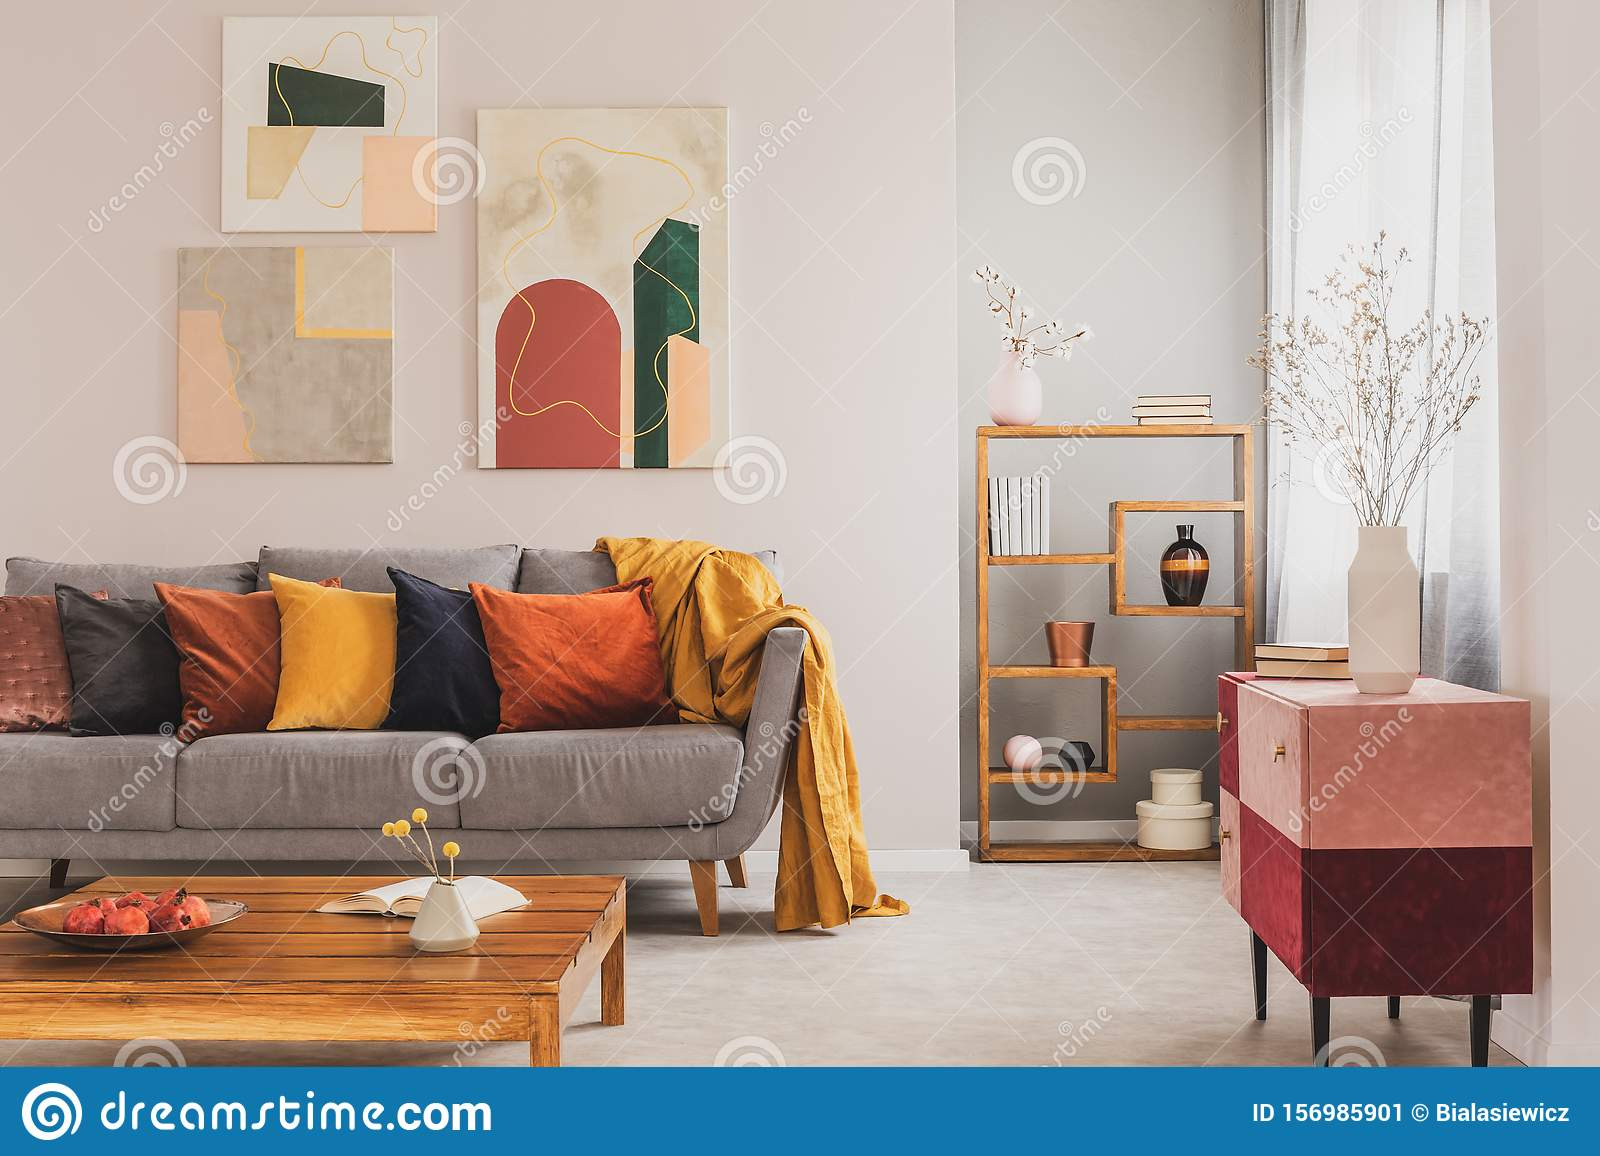 Yellow Orange Black And Brown Pillows On Comfortable Grey Scandinavian Sofa In Bright Living Room Interior With Abstract Stock Image Image Of Flat Chic 156985901